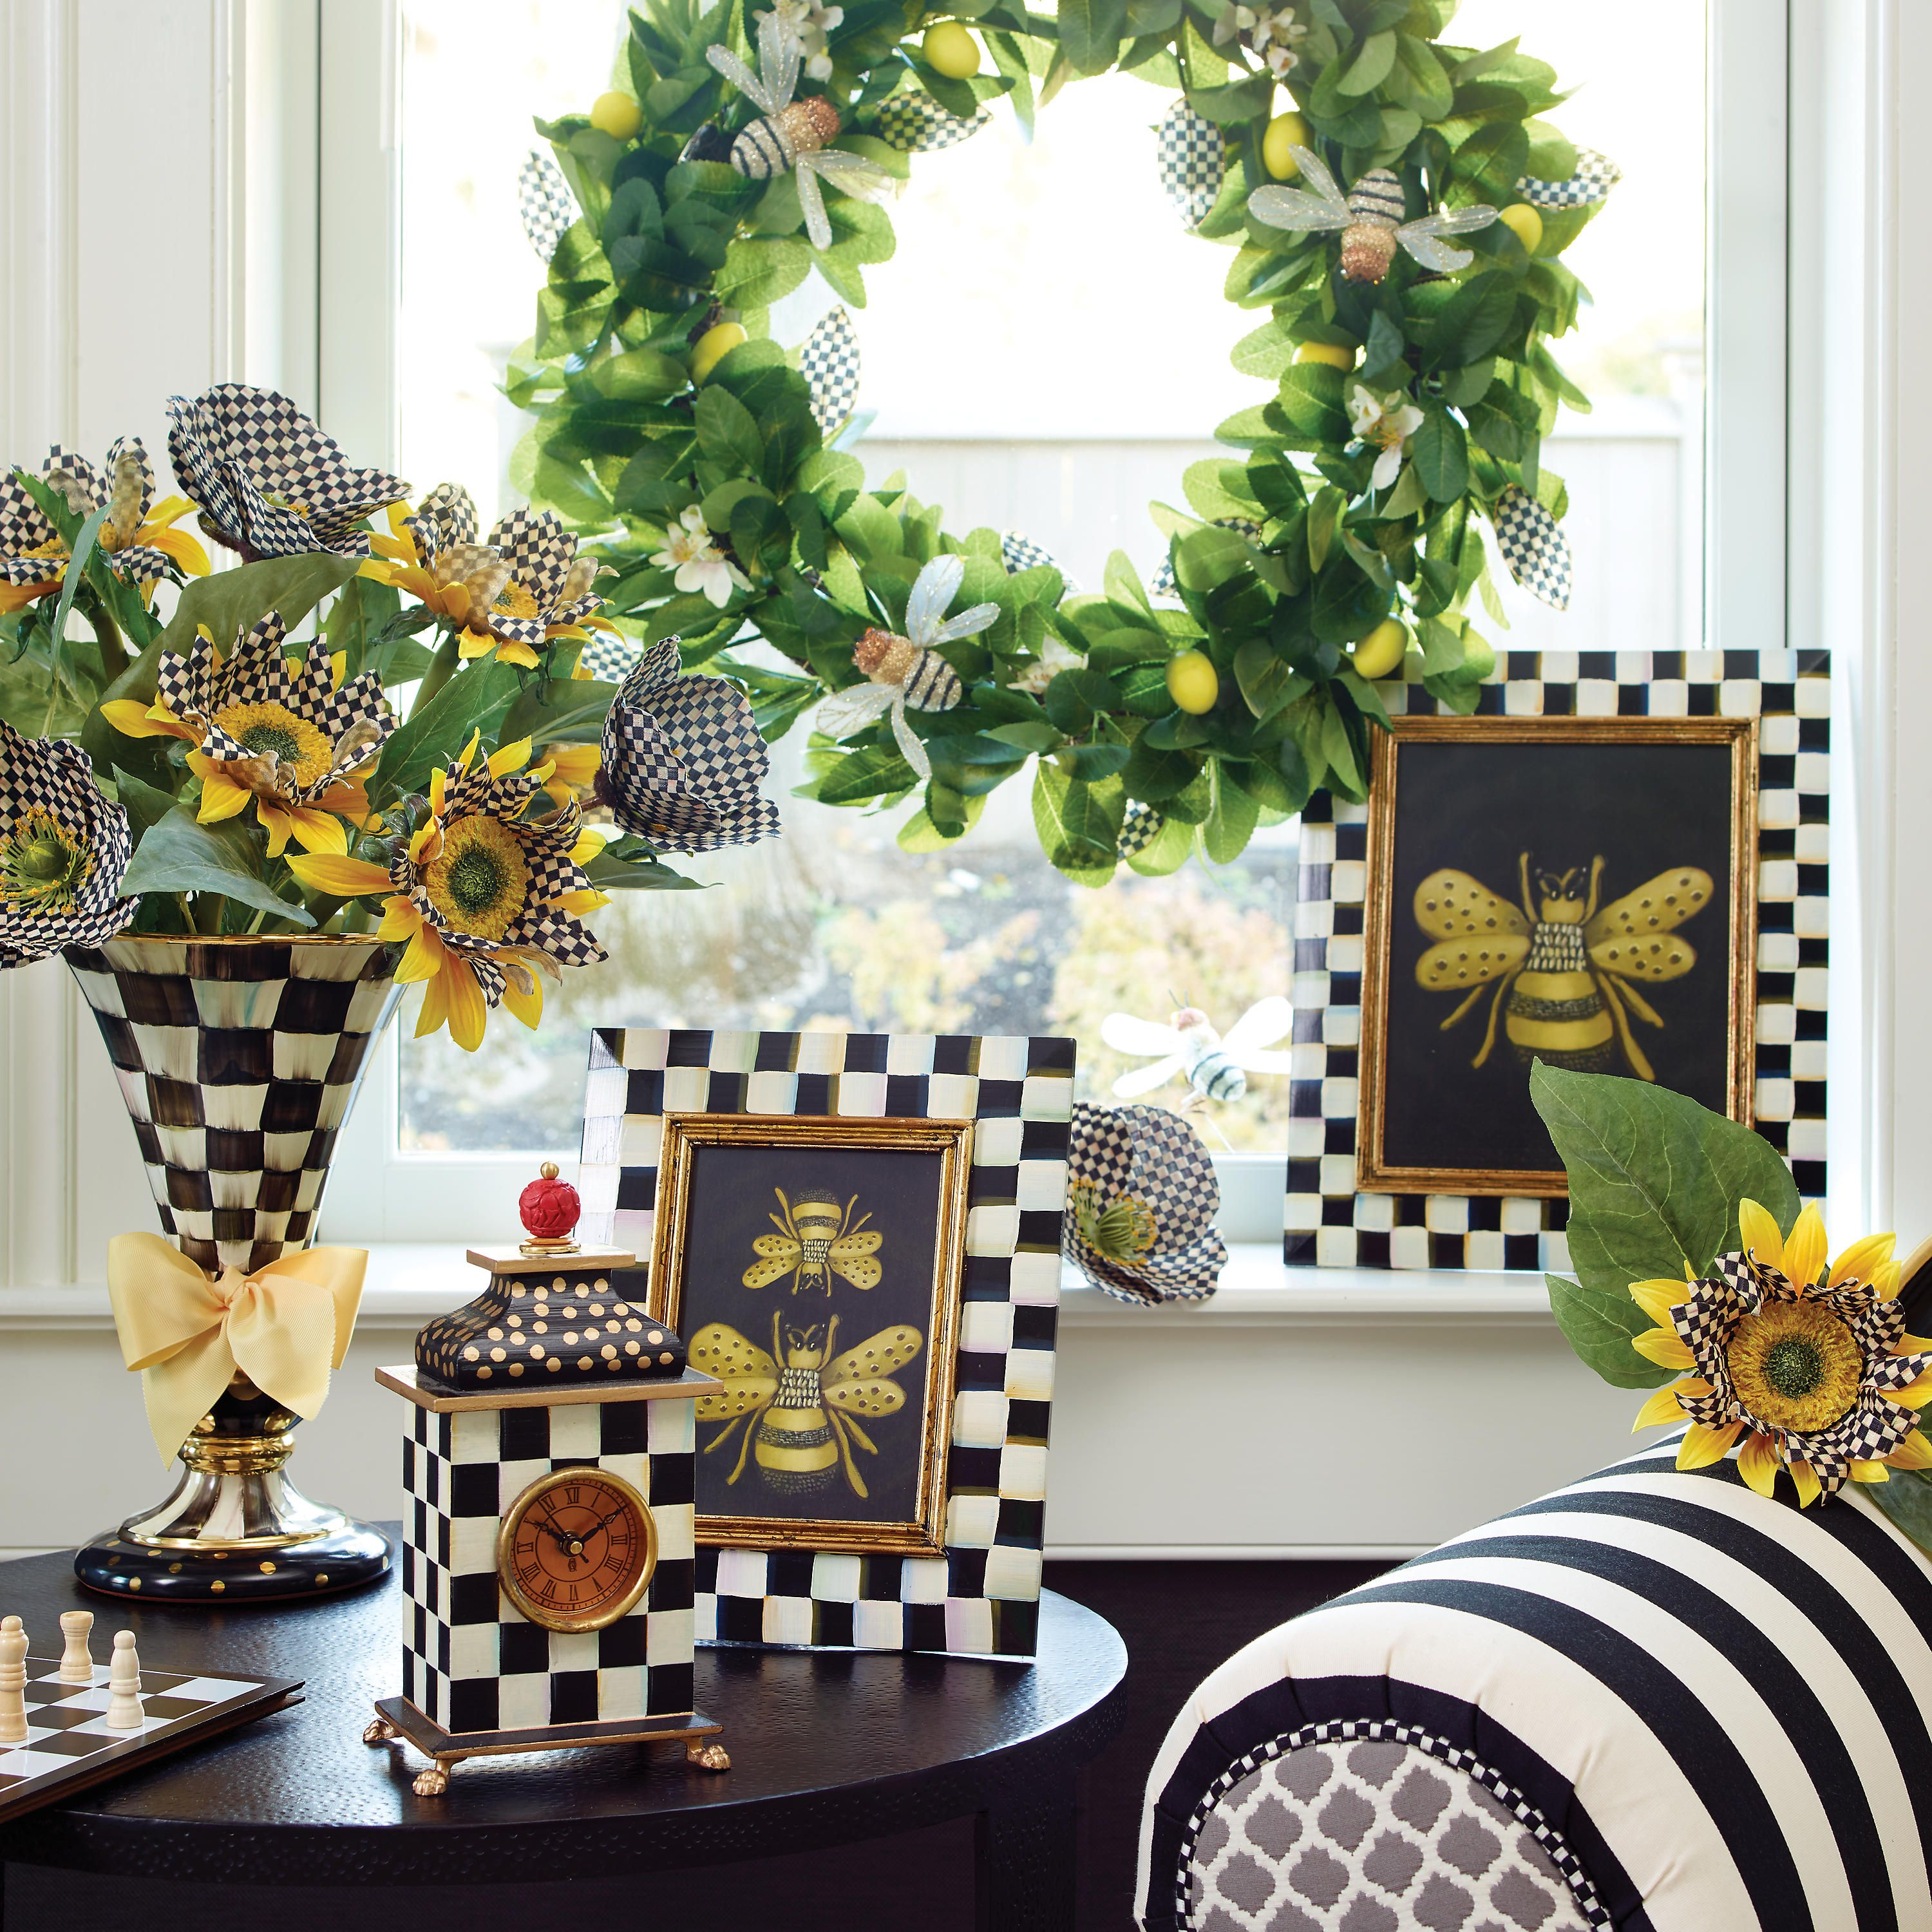 Bee Home Decor: All About The Bees.